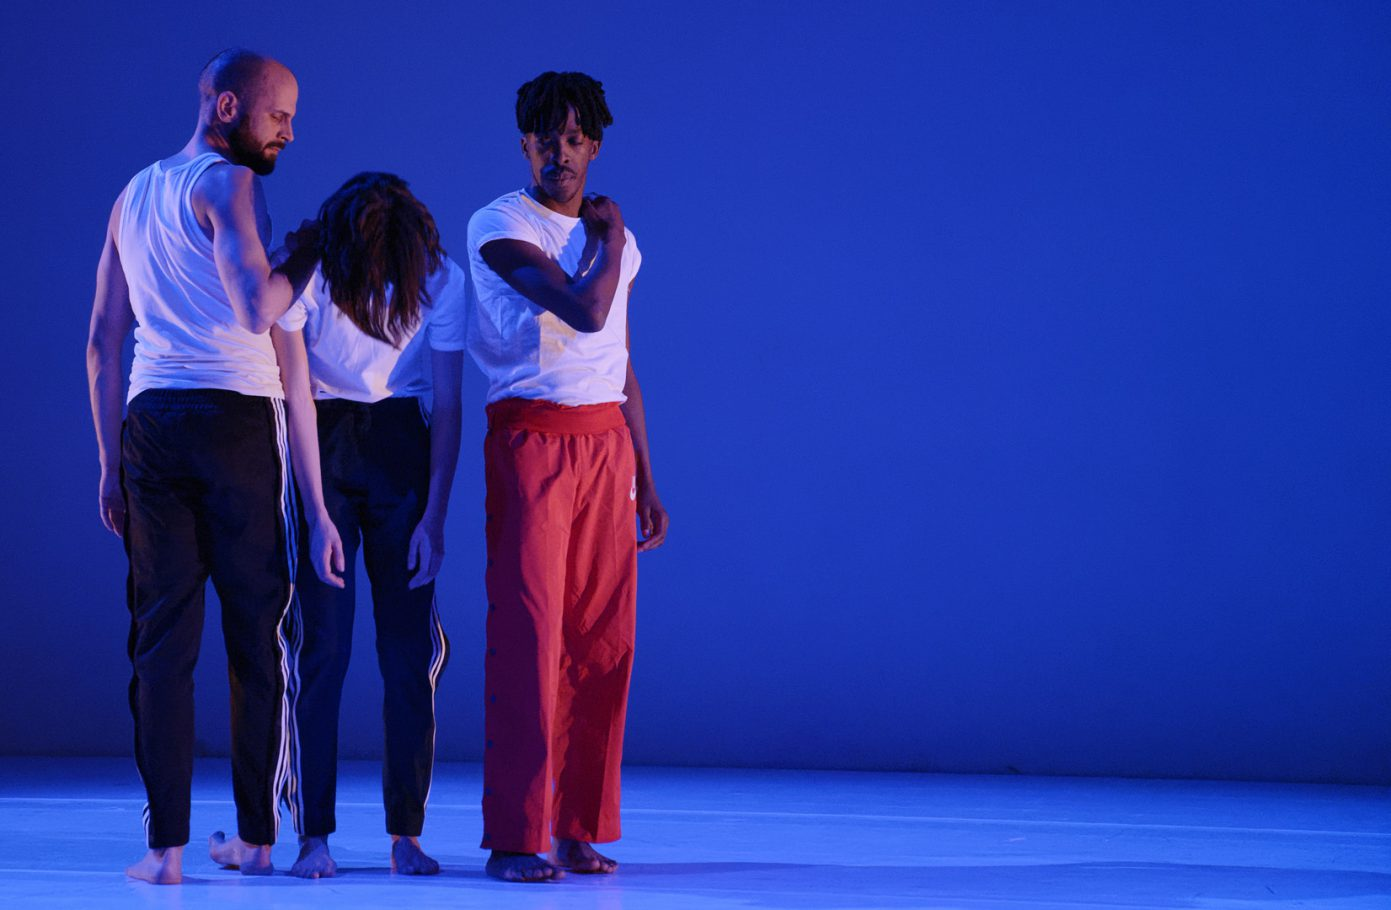 moving-future-dansmakers-amsterdam-transitioning-performance-connor-schumacher-christopher-tandy-orla-mccarthy-nicolas-coutsier-dans-theater-fotografie-thomas-lenden